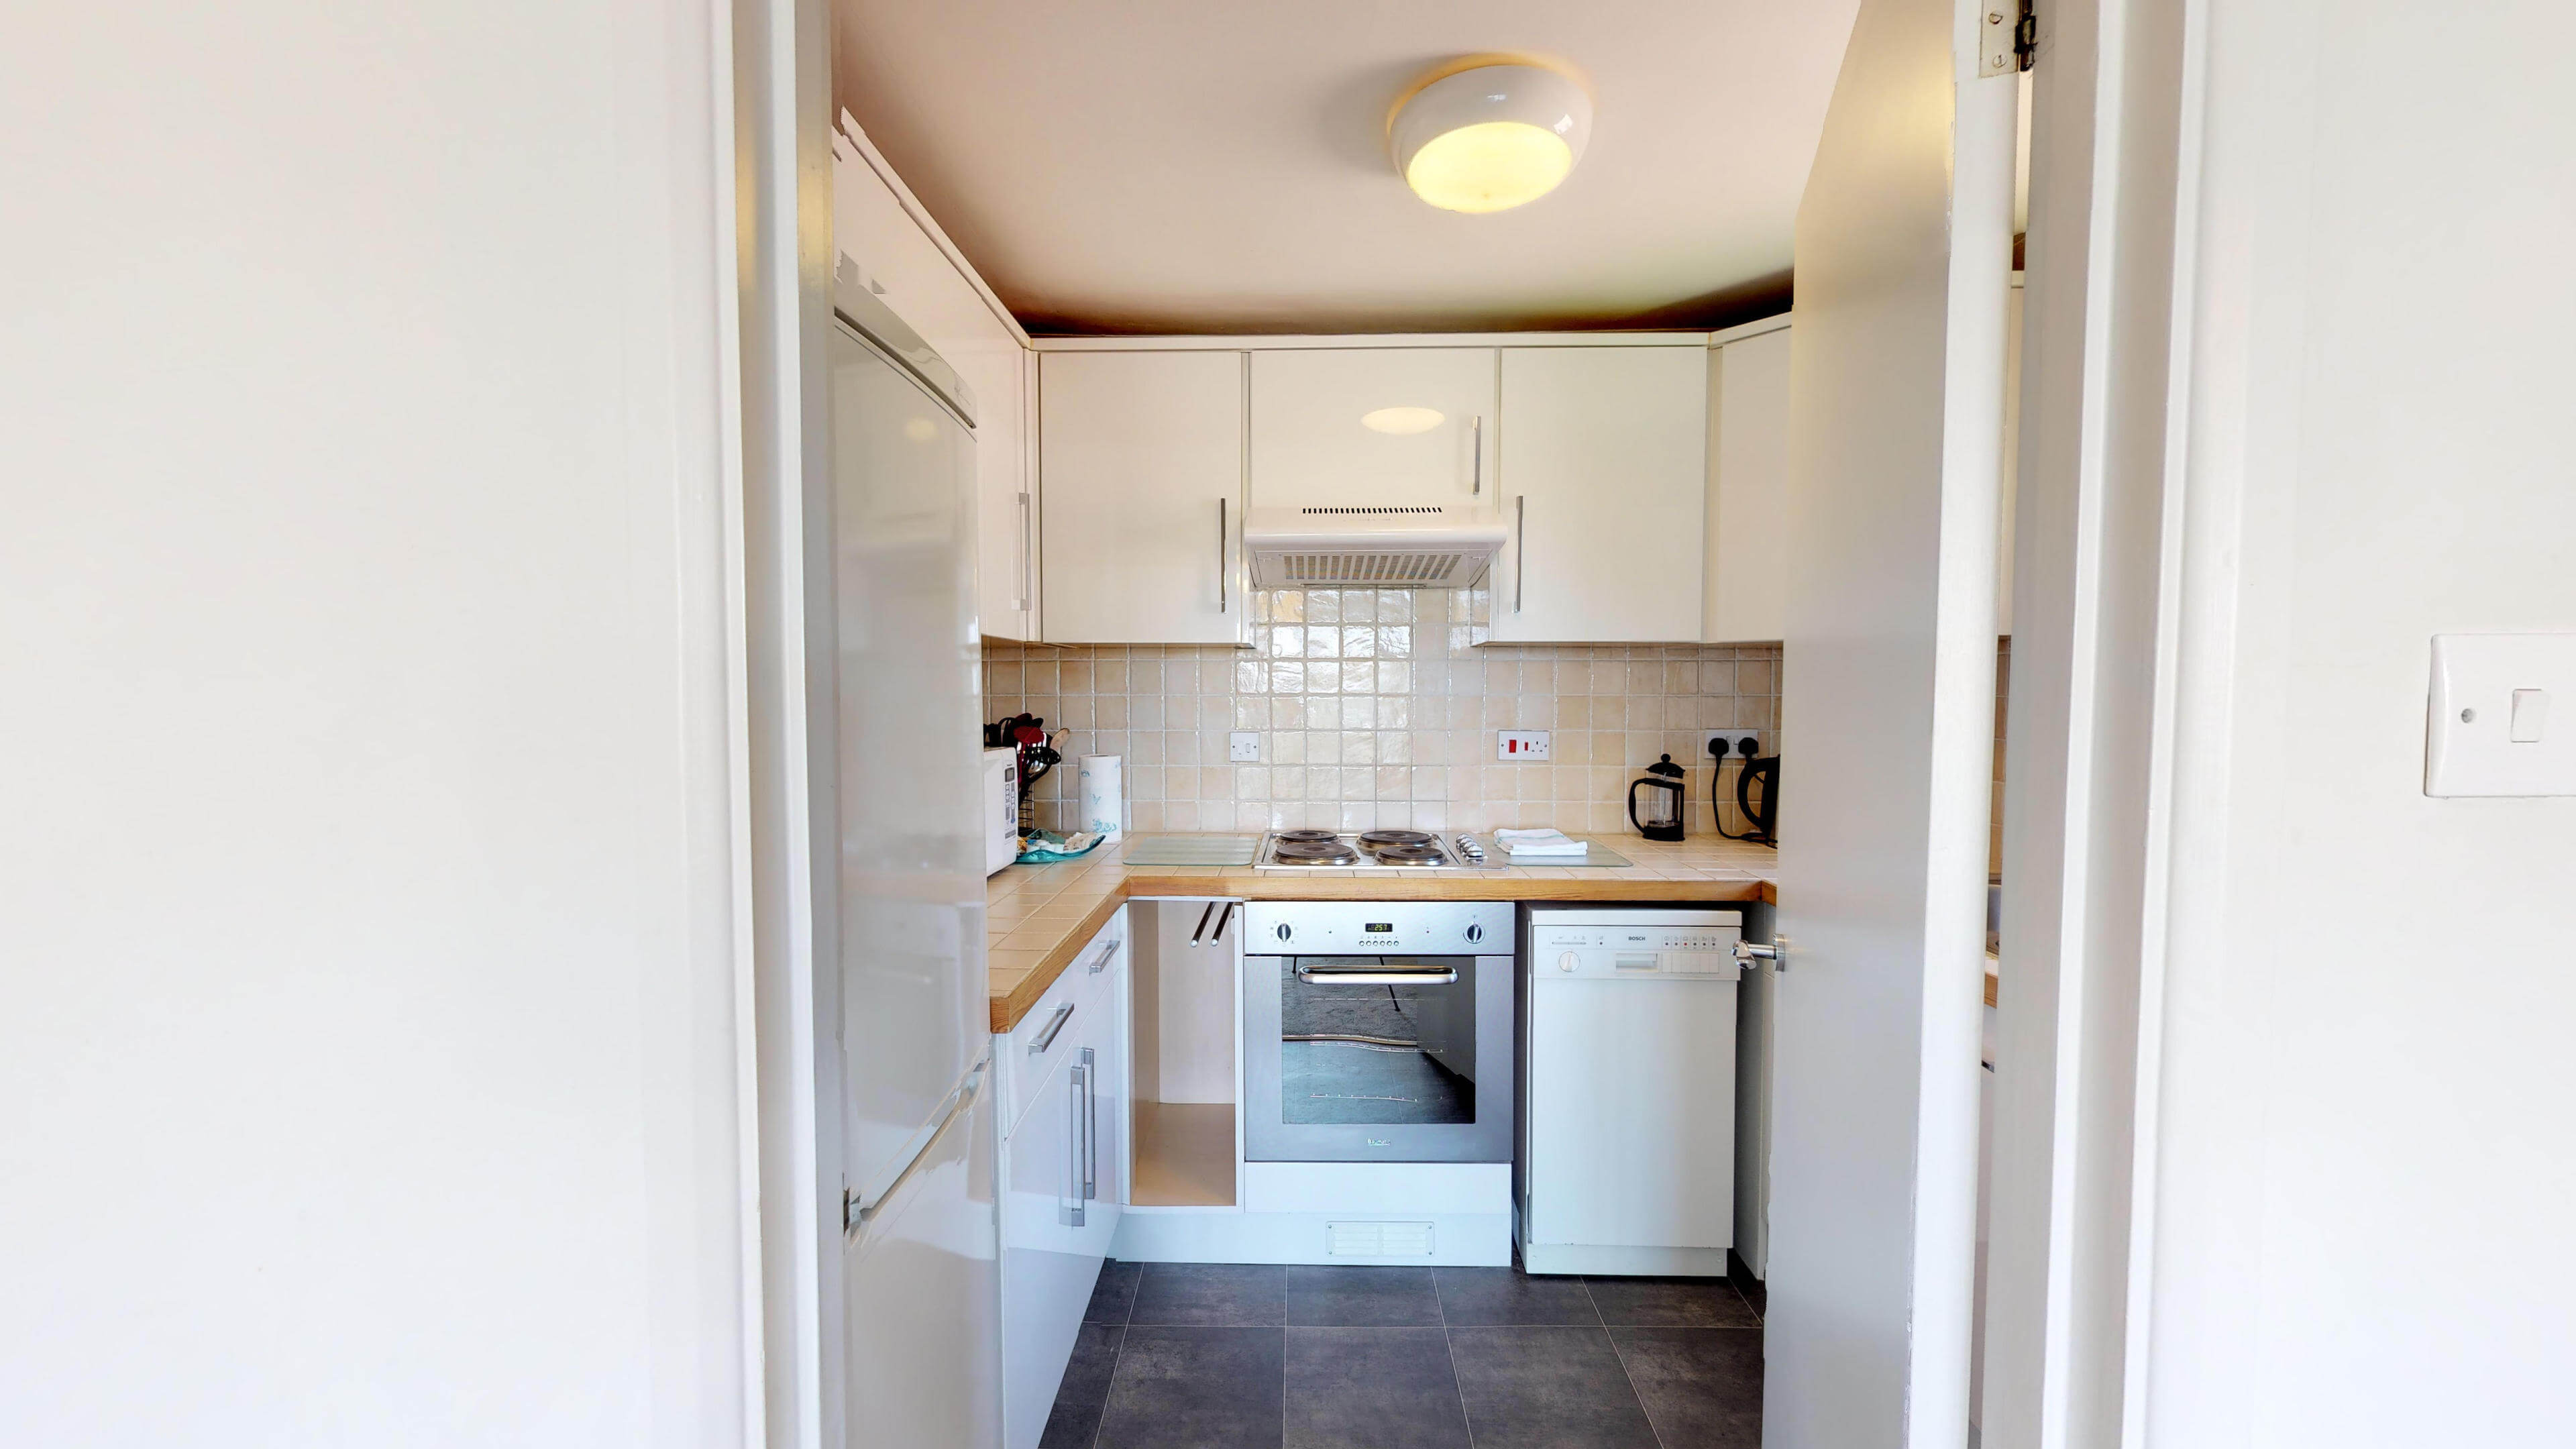 Short Stay Oxford The Firs Apartment 05232019 064715